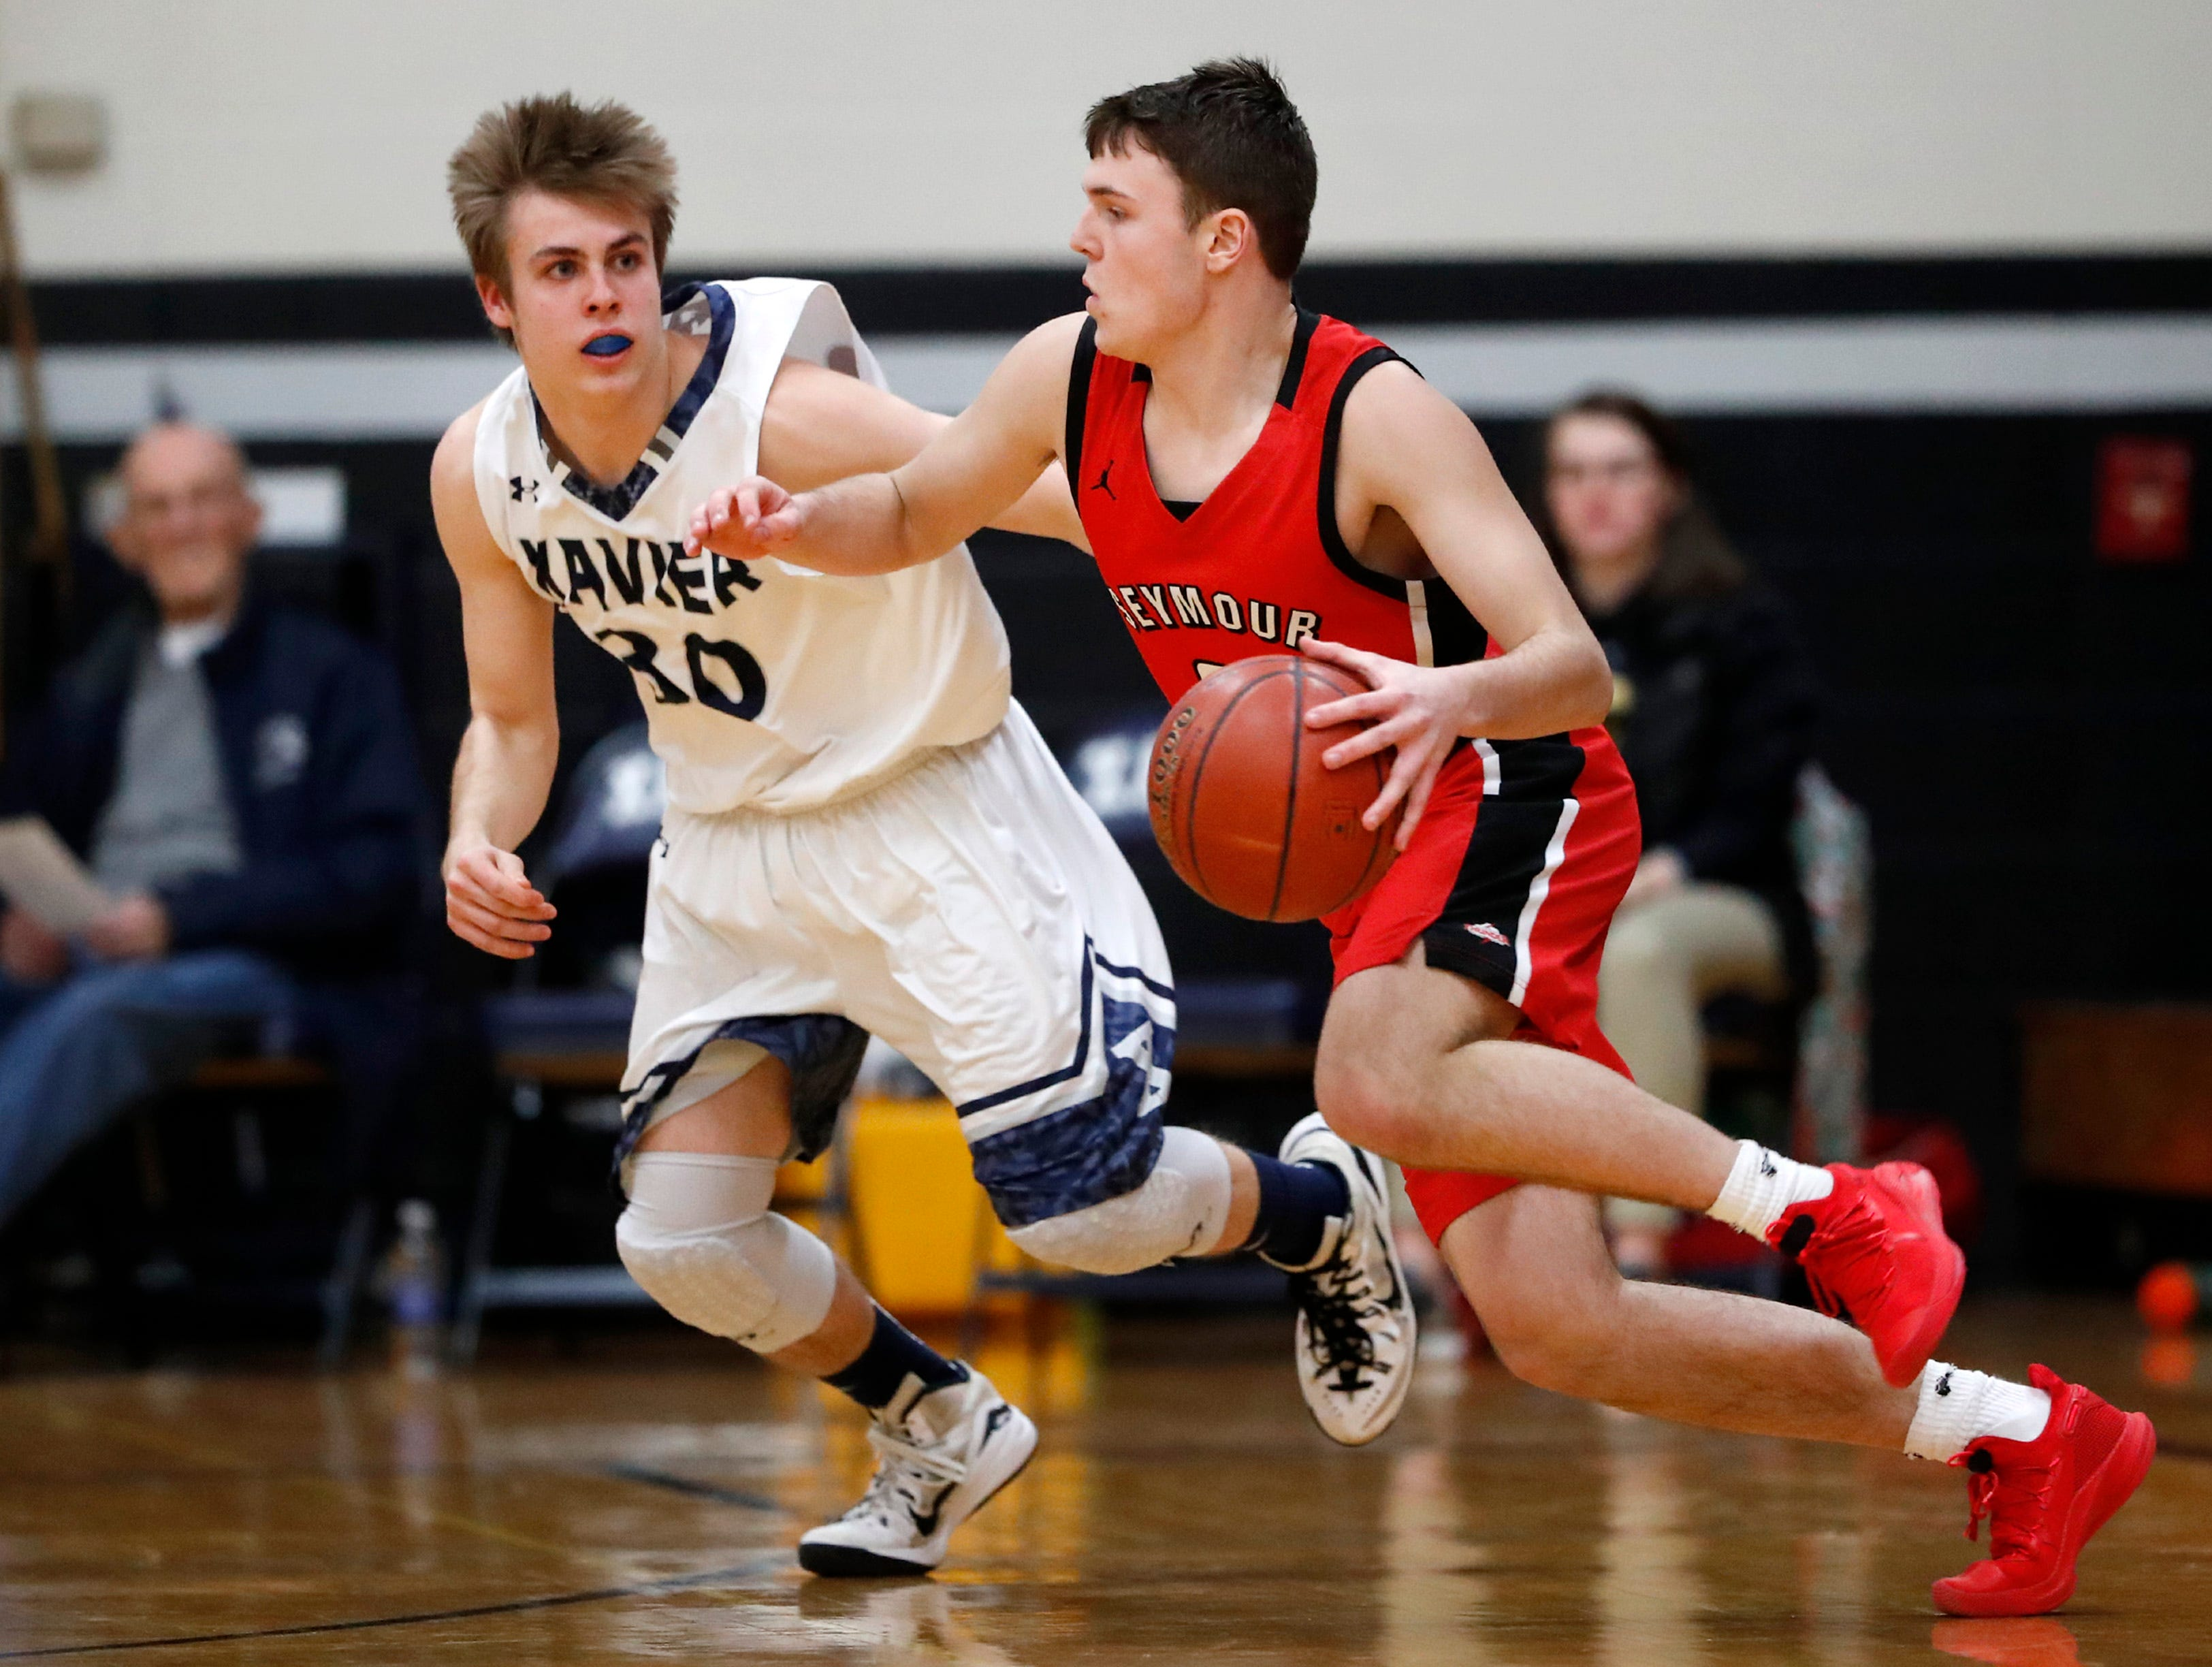 Xavier High SchoolÕs Cal Mares tries to cover Seymour High School's Riley Murphy Friday, Feb. 8, 2019, in Appleton, Wis.Xavier High School defeated Seymour 92-50.Danny Damiani/USA TODAY NETWORK-Wisconsin